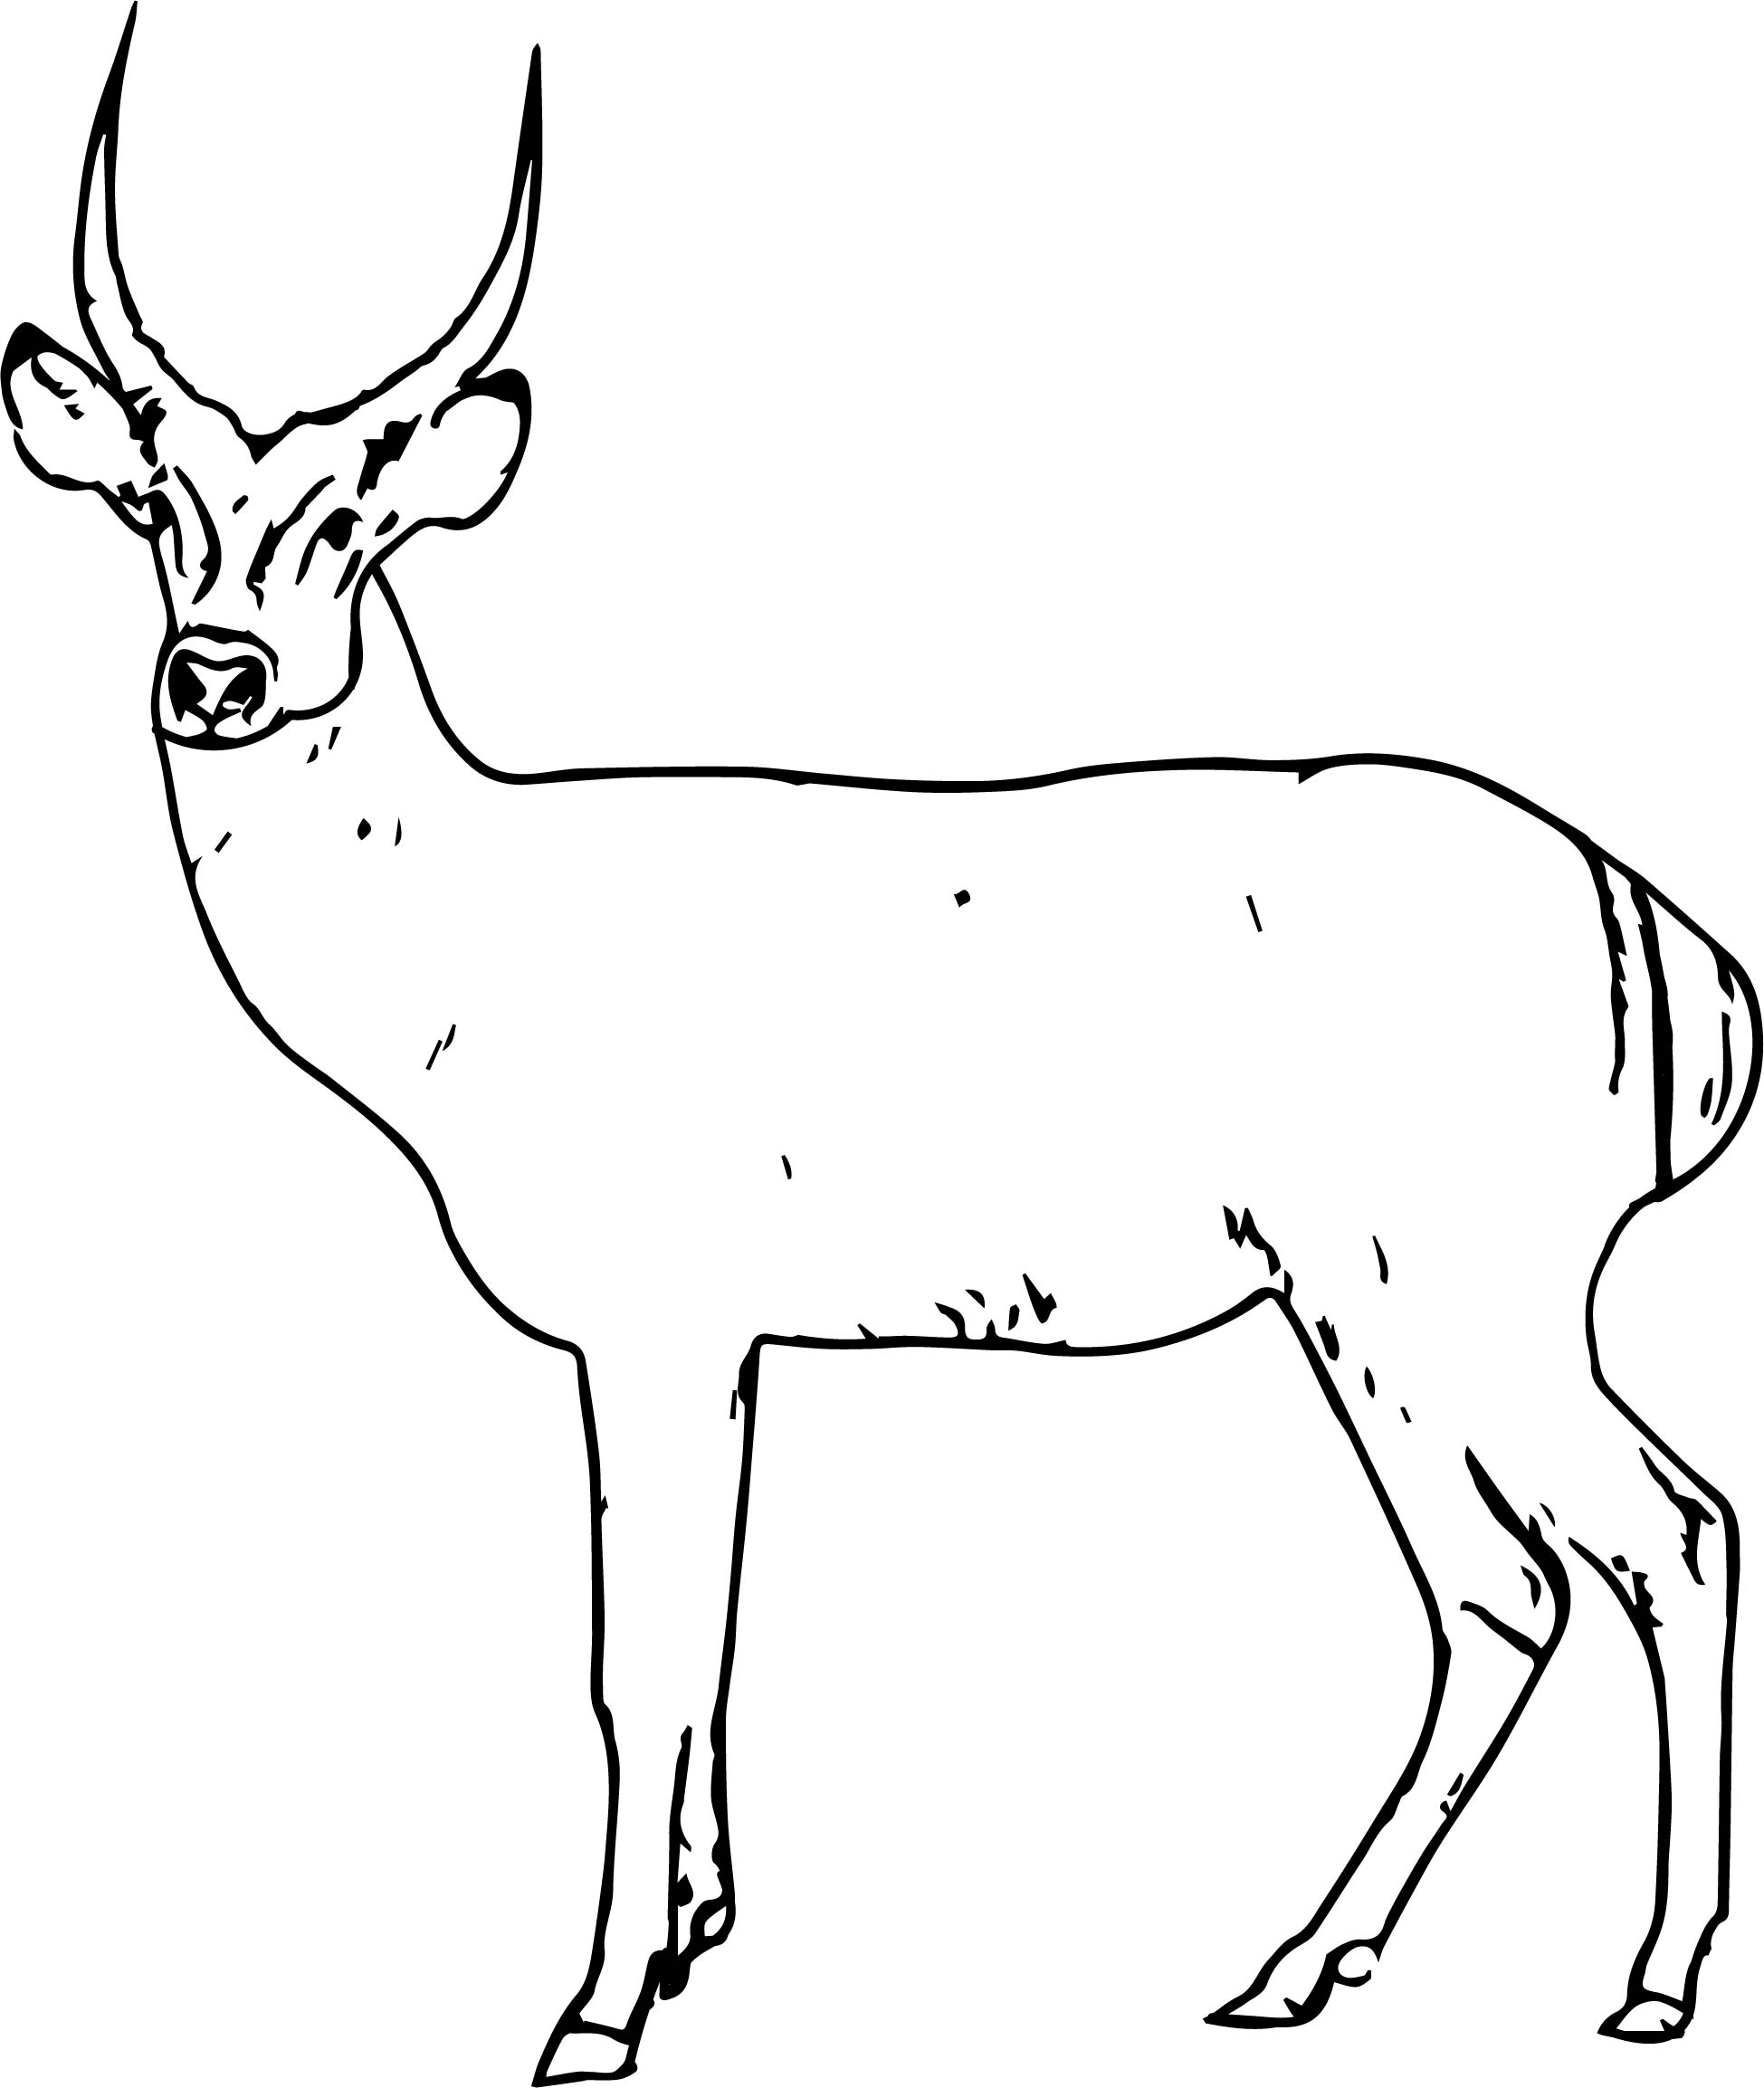 Antelope Spotted Deer Coloring Page